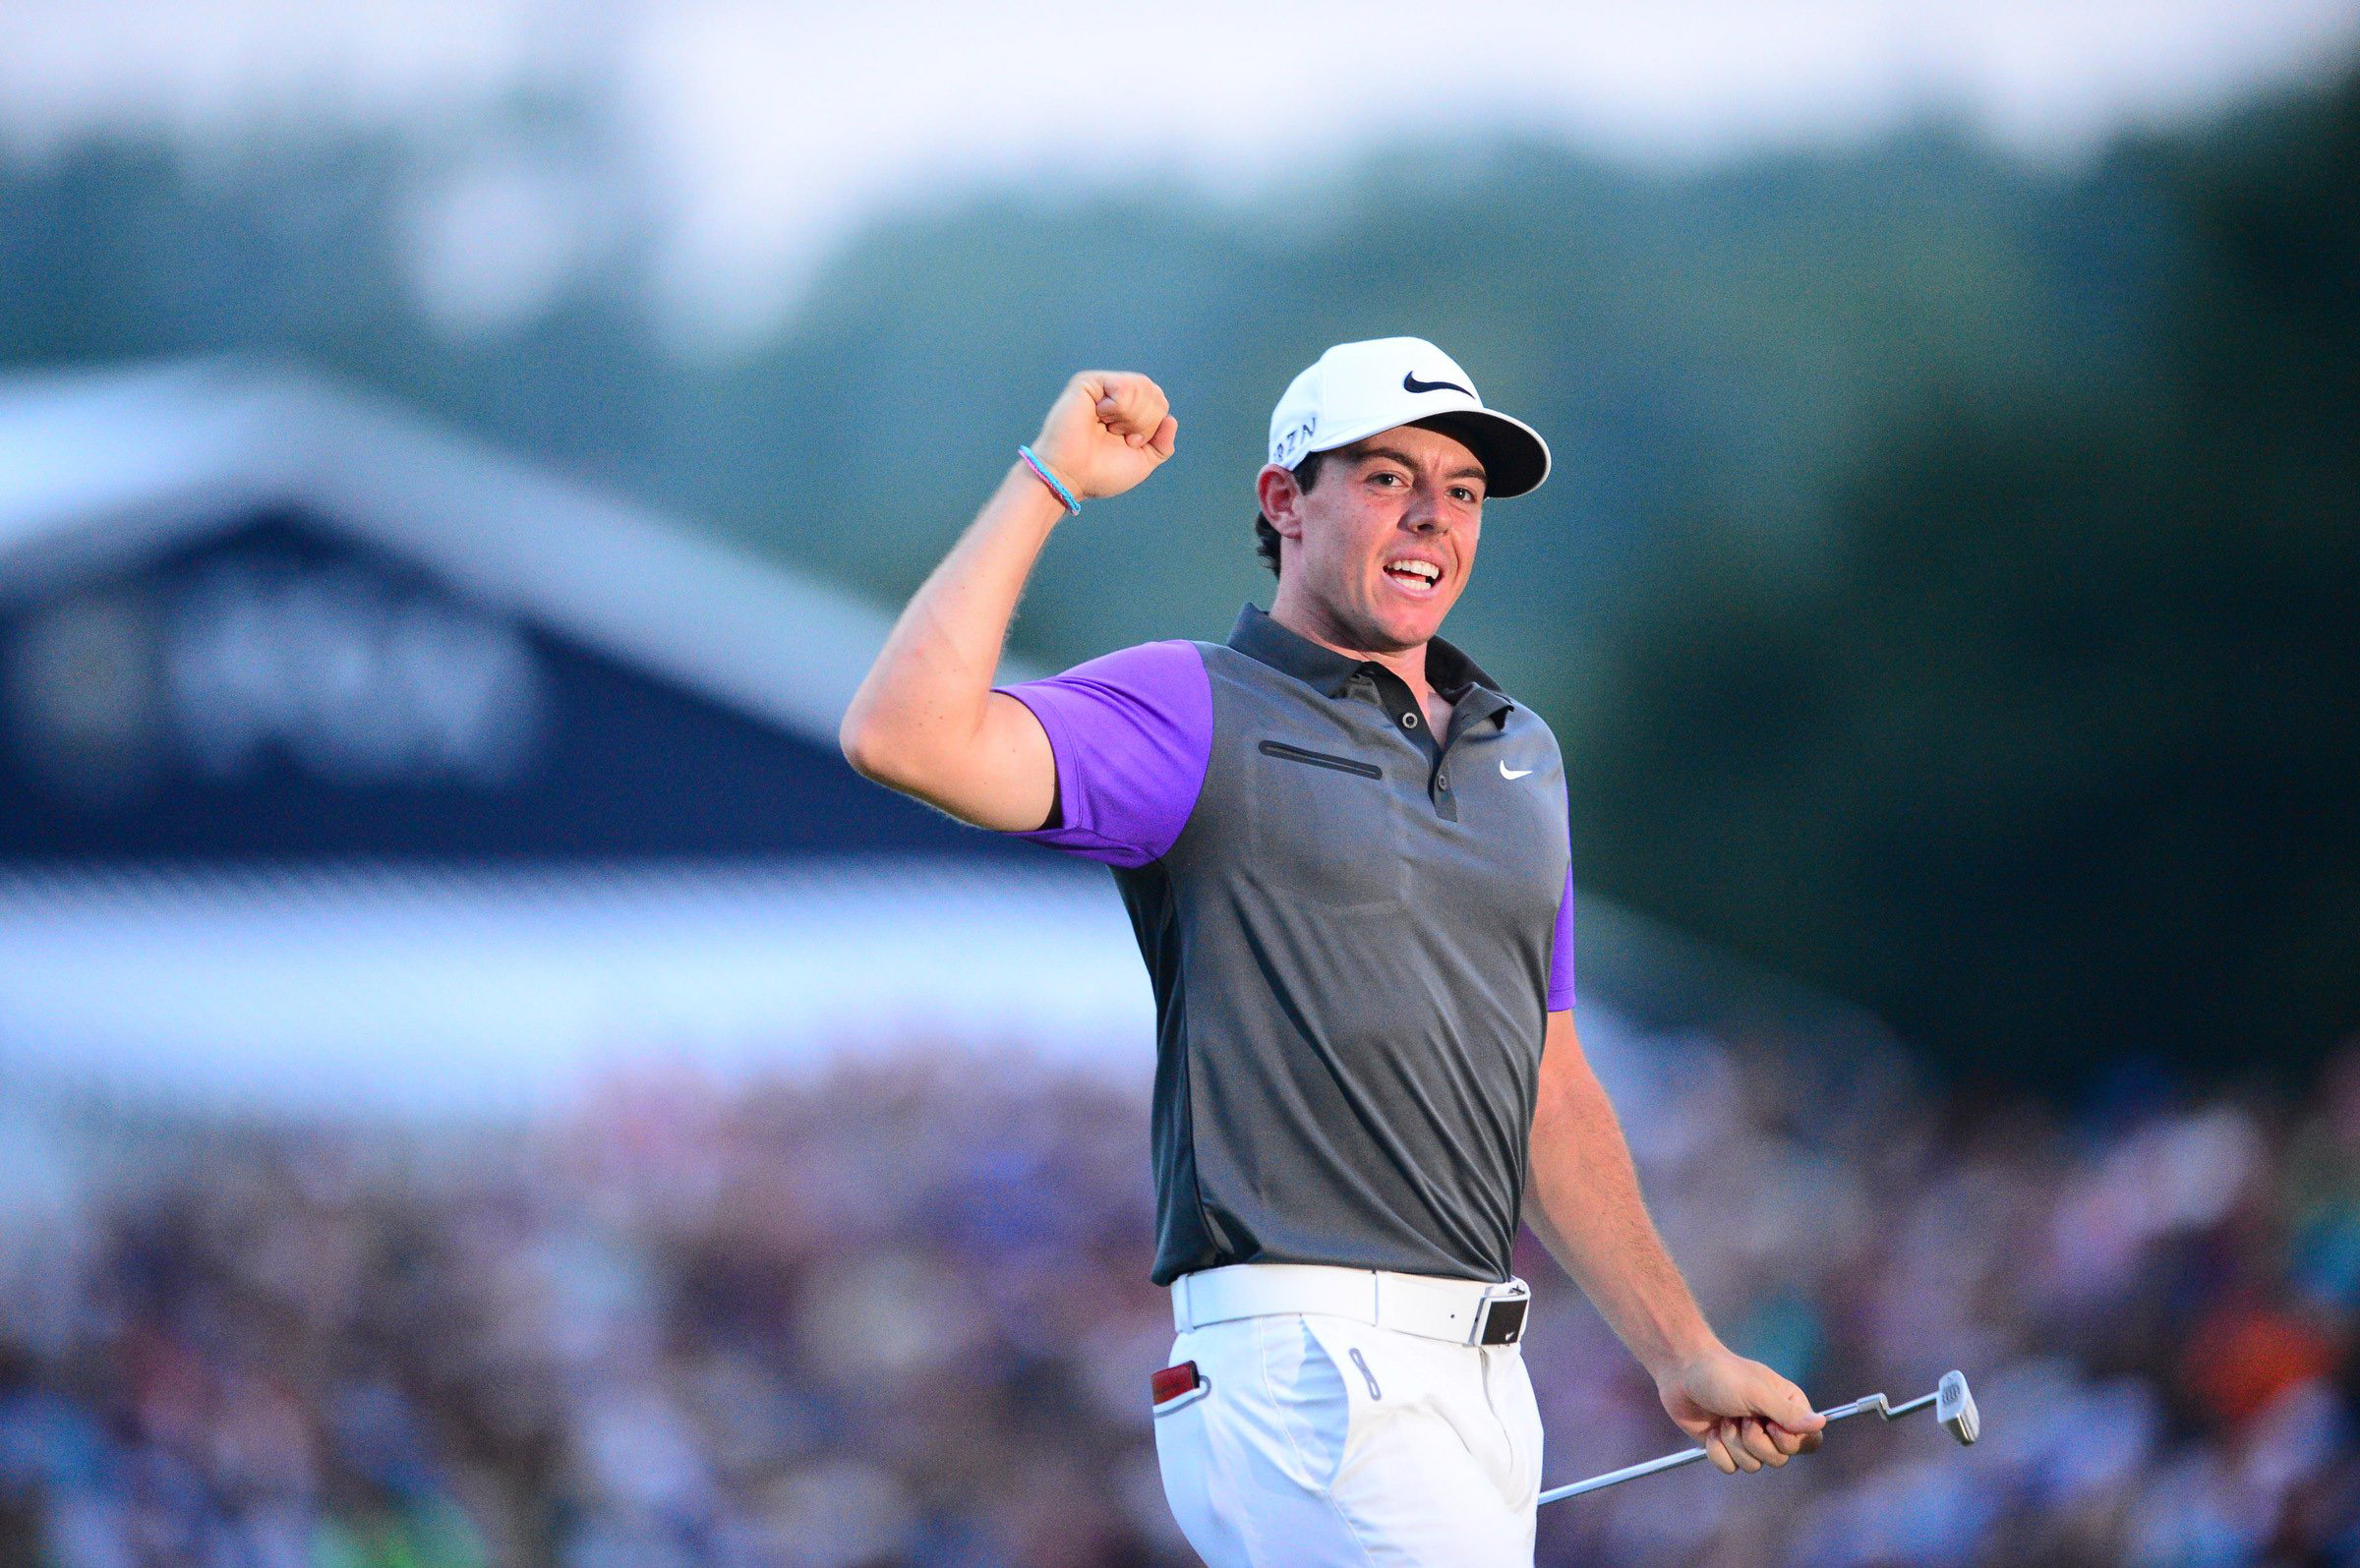 Rory McIlroy celebrates his win at 2014 PGA Championship at Valhalla.